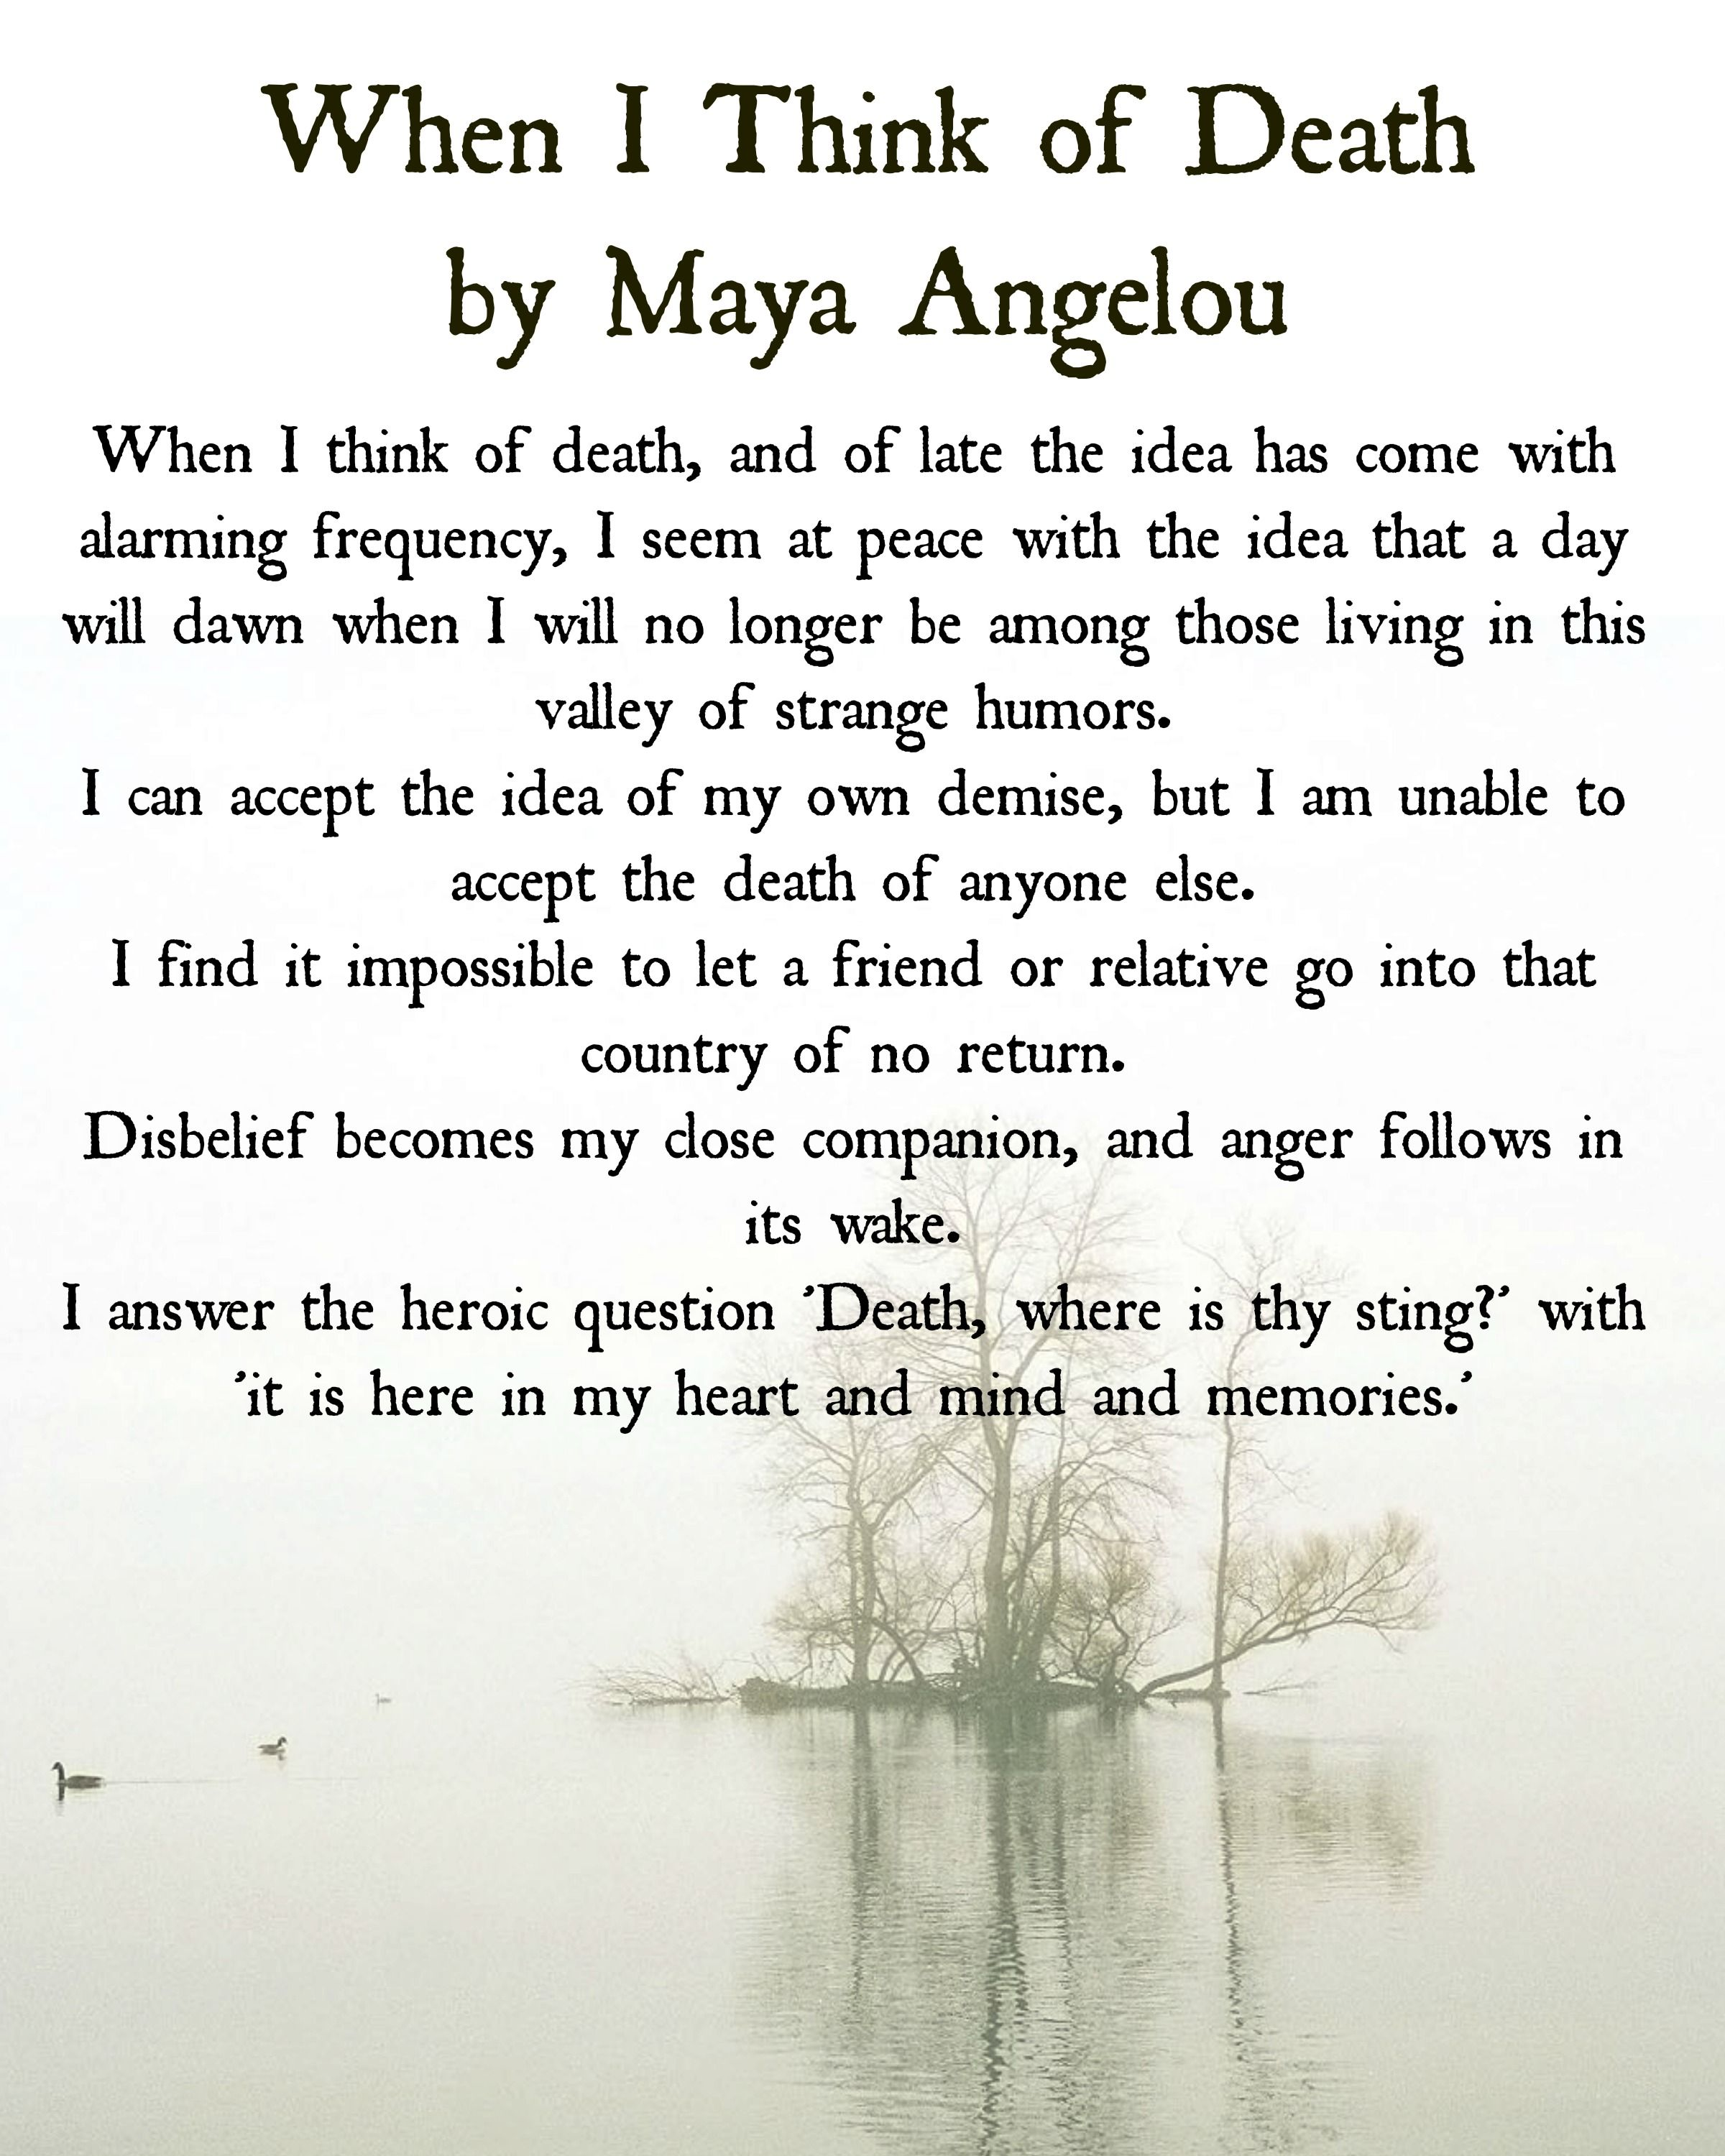 In Memory Of Loved Ones Quotes In Remembrance Of Maya Angelou  What's Your Grief  Grief